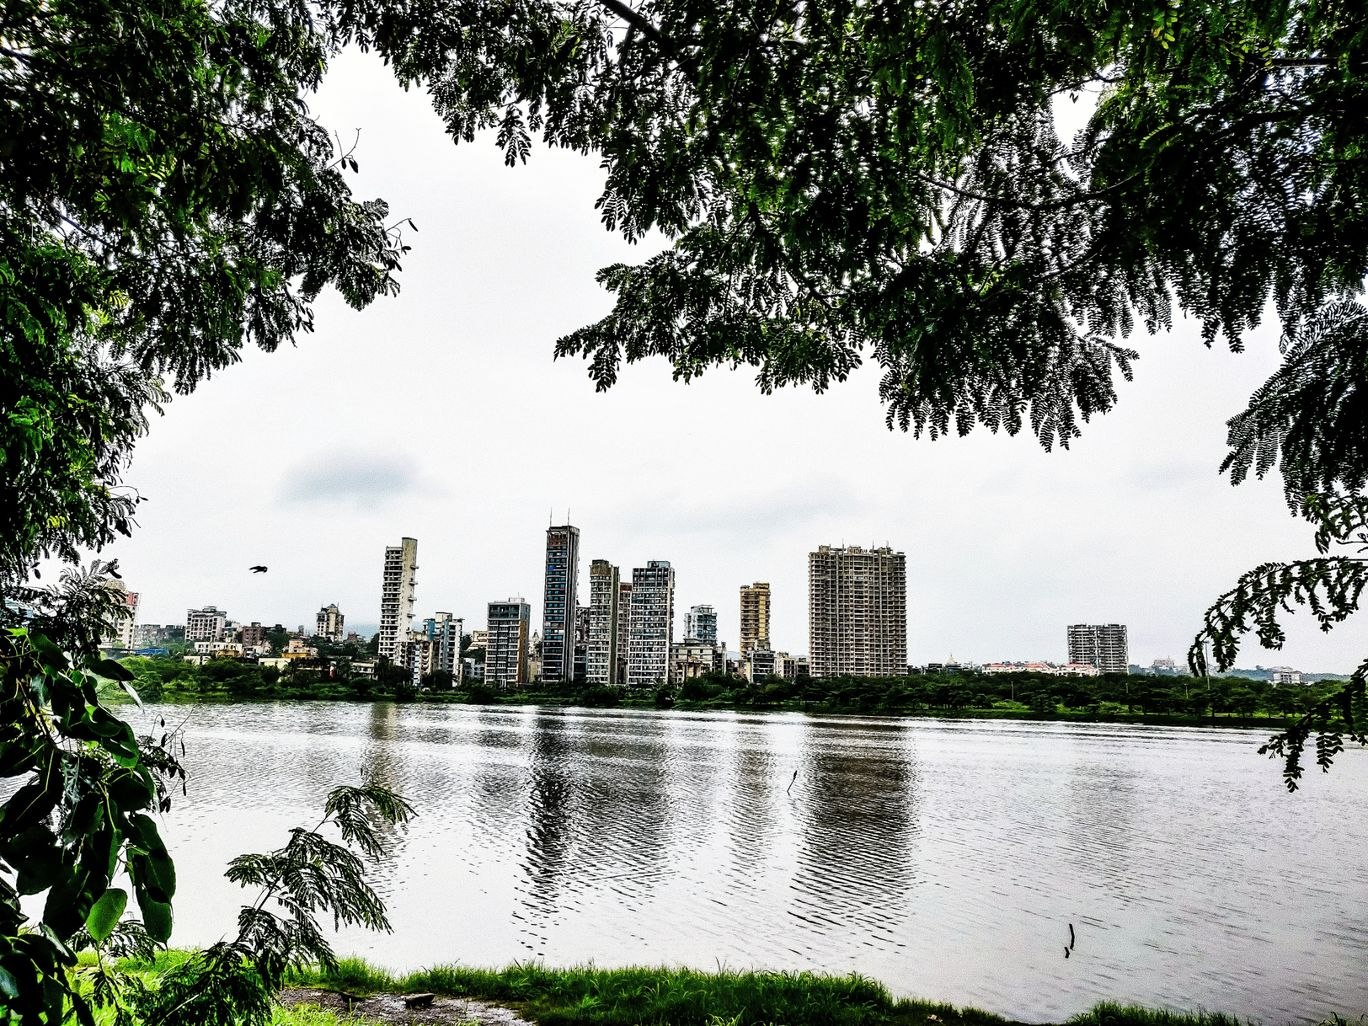 Photo of Jewel of Navi Mumbai By Dipen Shukla